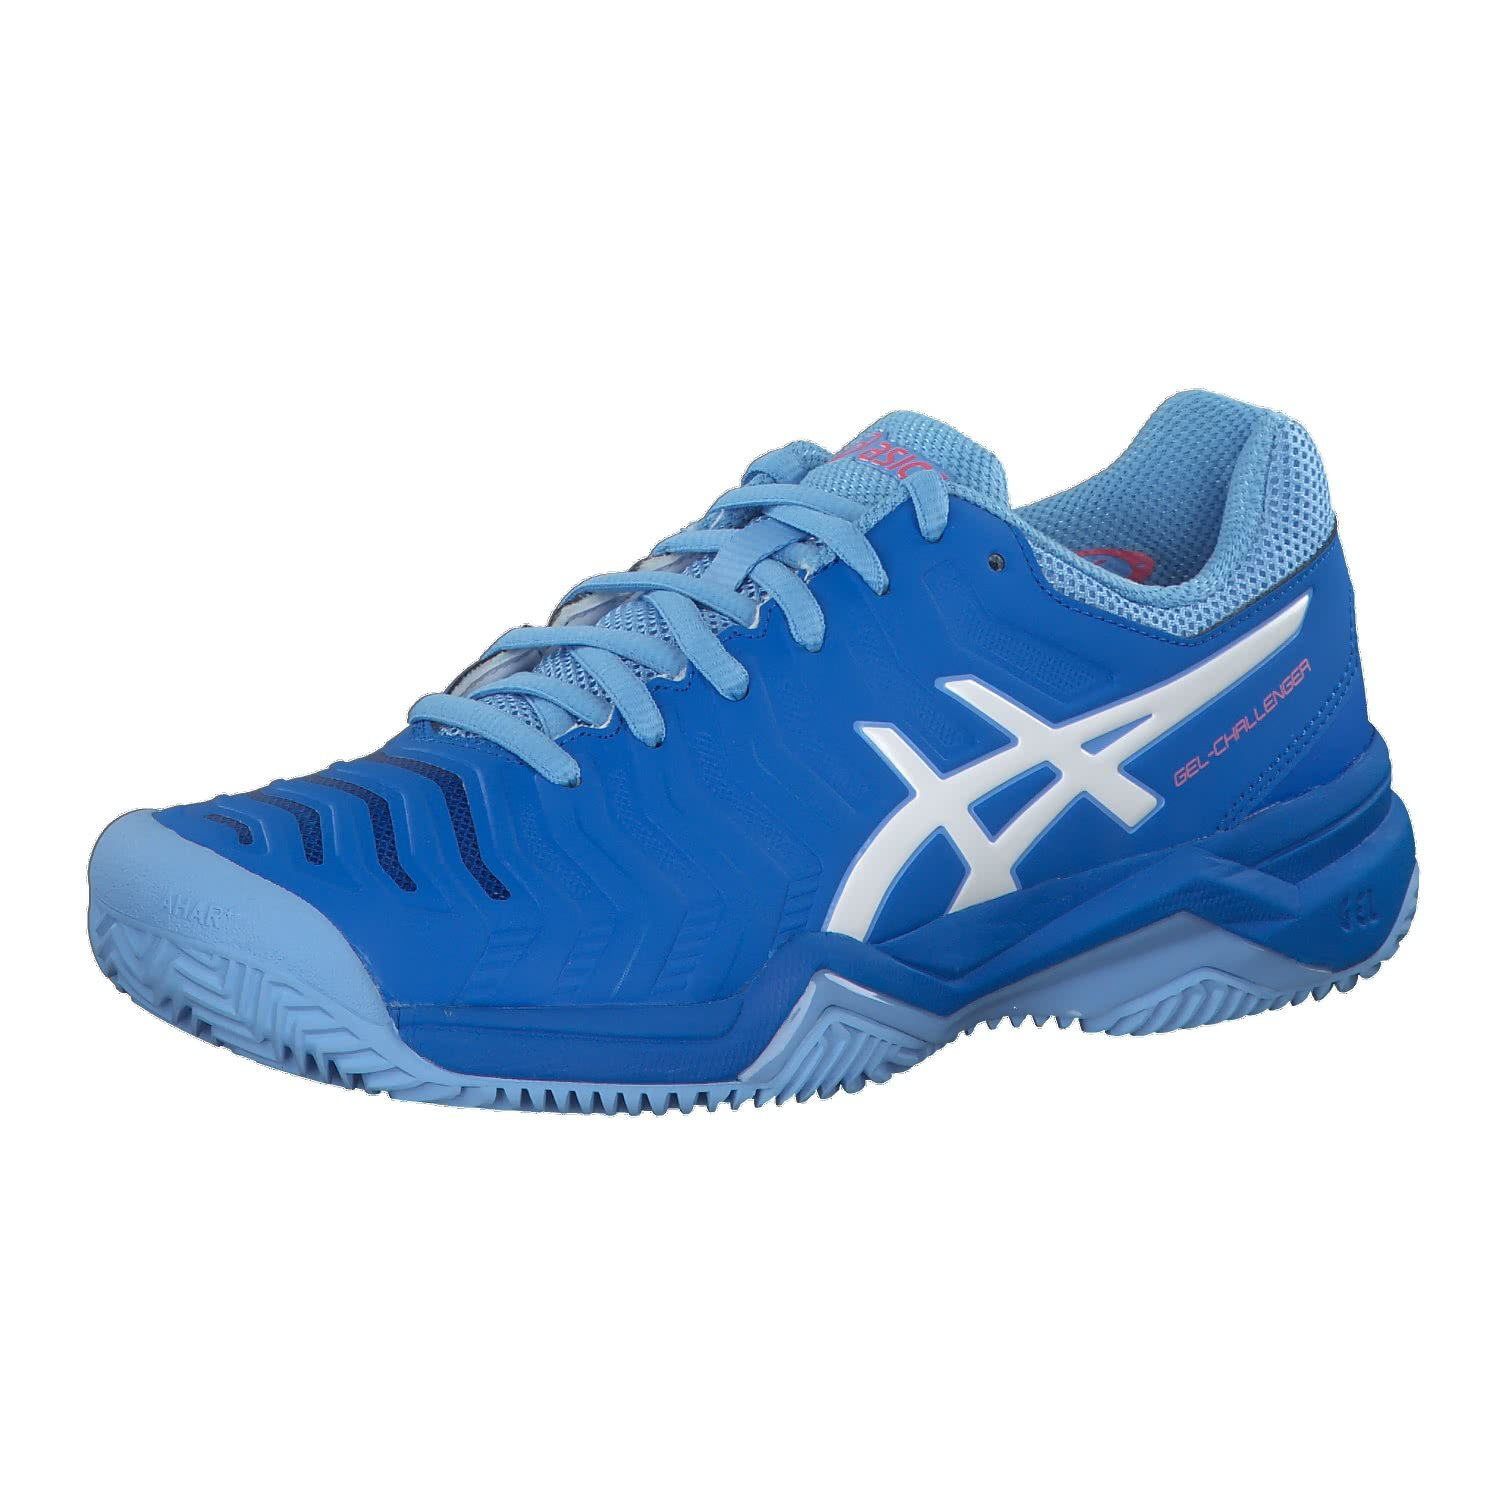 18d3d93c8fe ASICS Women s Tennisschuh Gel-Challenger 11 Clay Tennis Shoes   Amazon.co.uk  Shoes   Bags